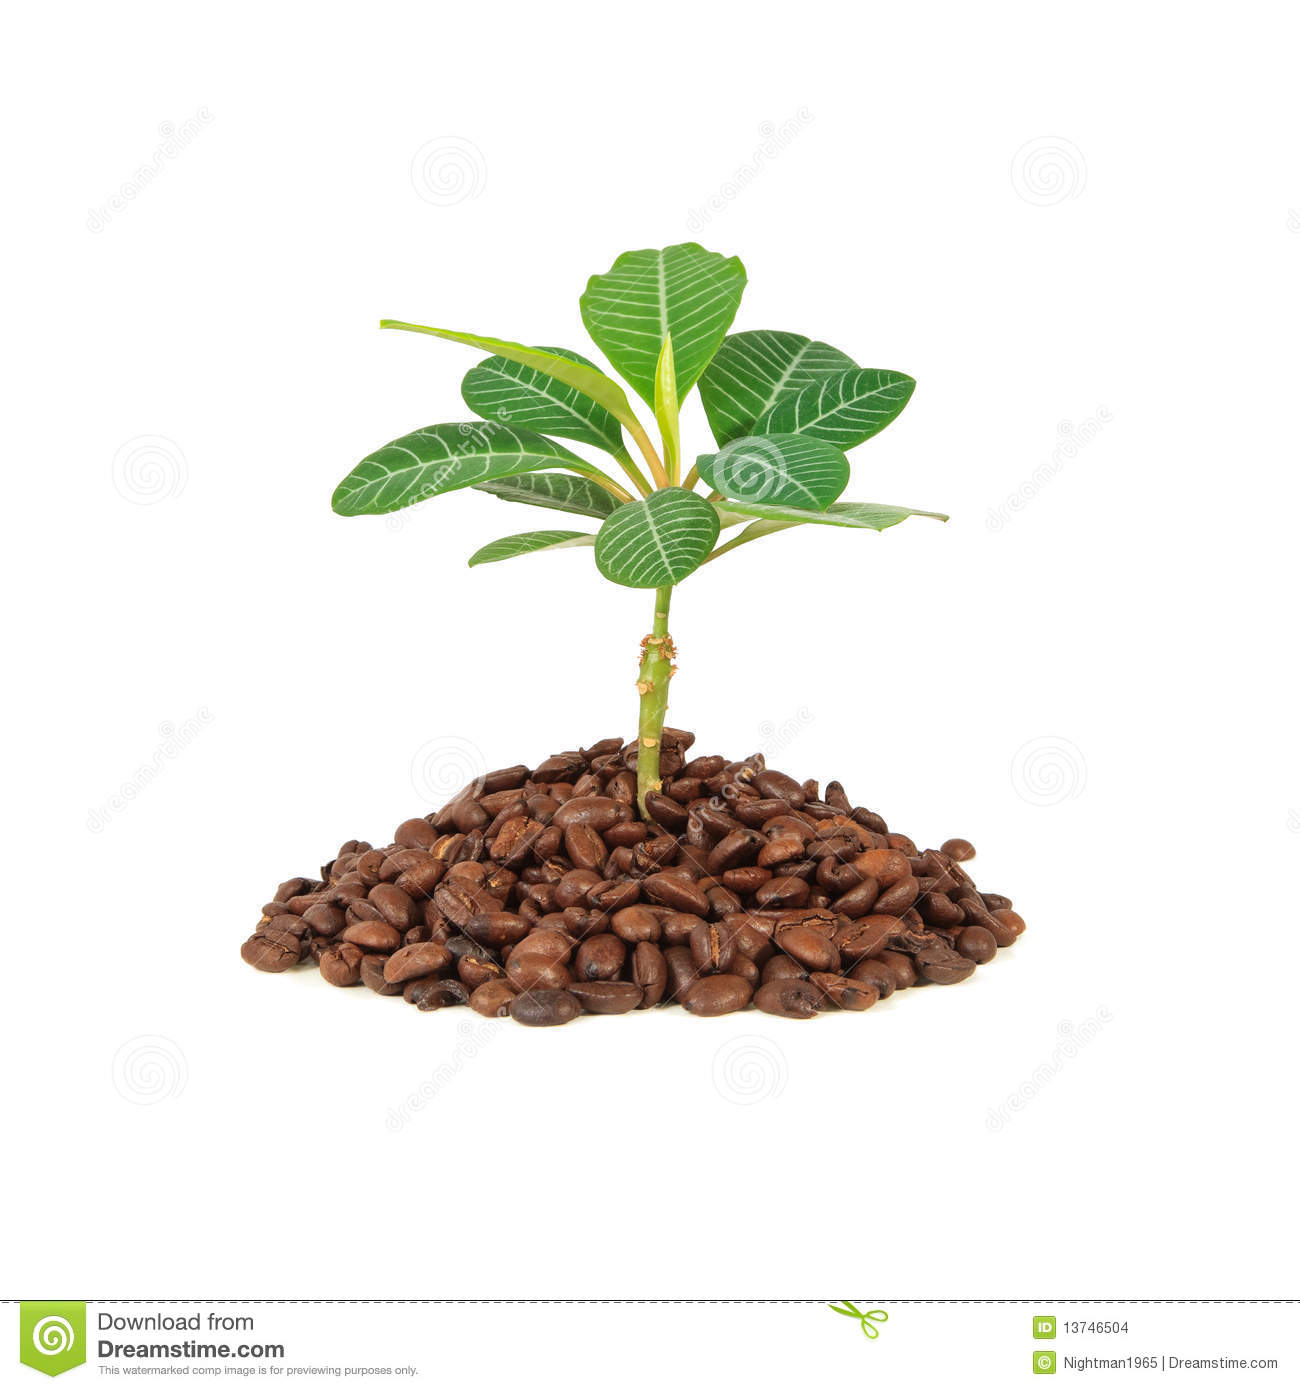 Coffee Plant Stock Images - Image: 13746504